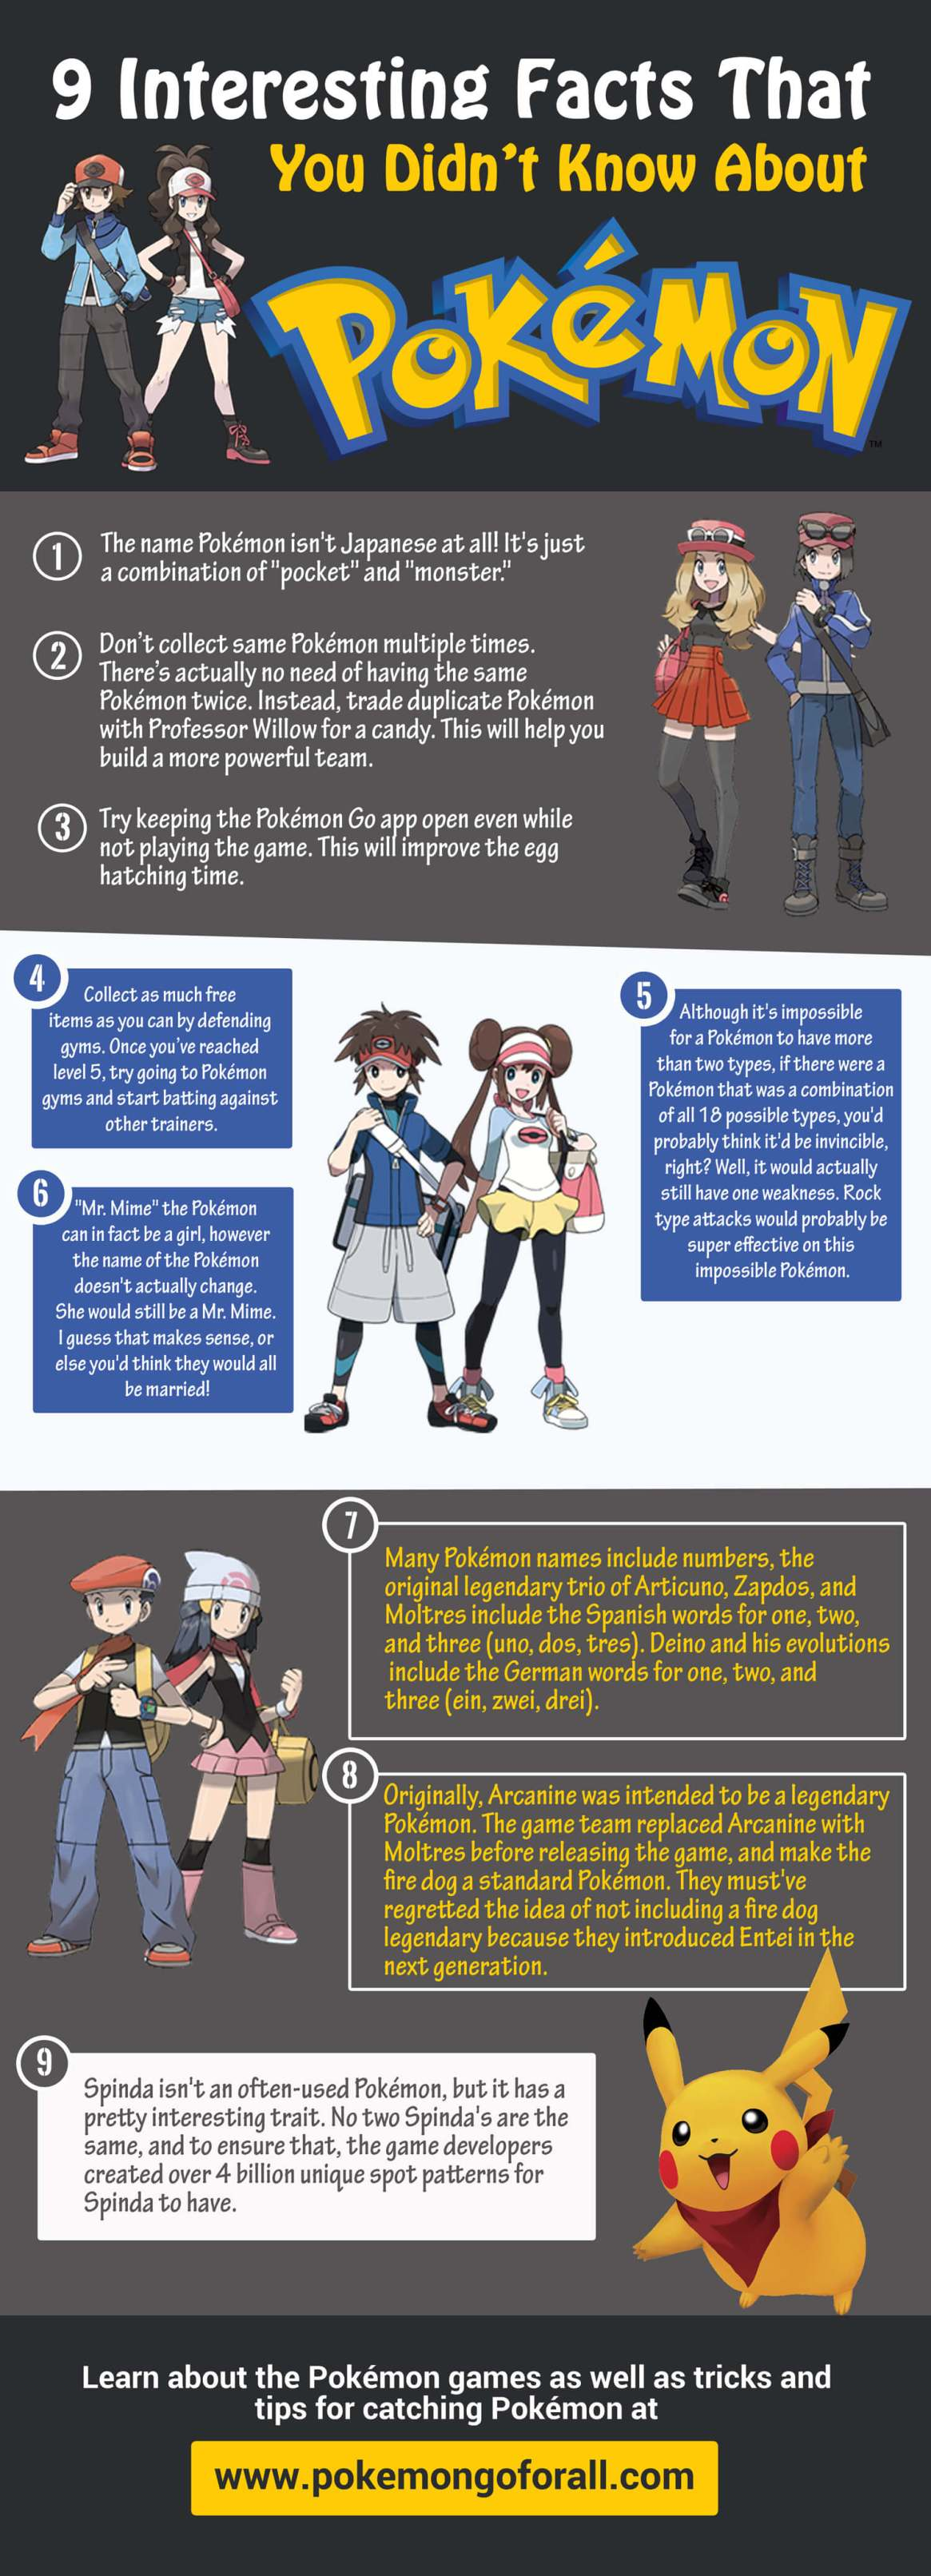 9 Interesting Facts You Didn't Know About Pokémon Go